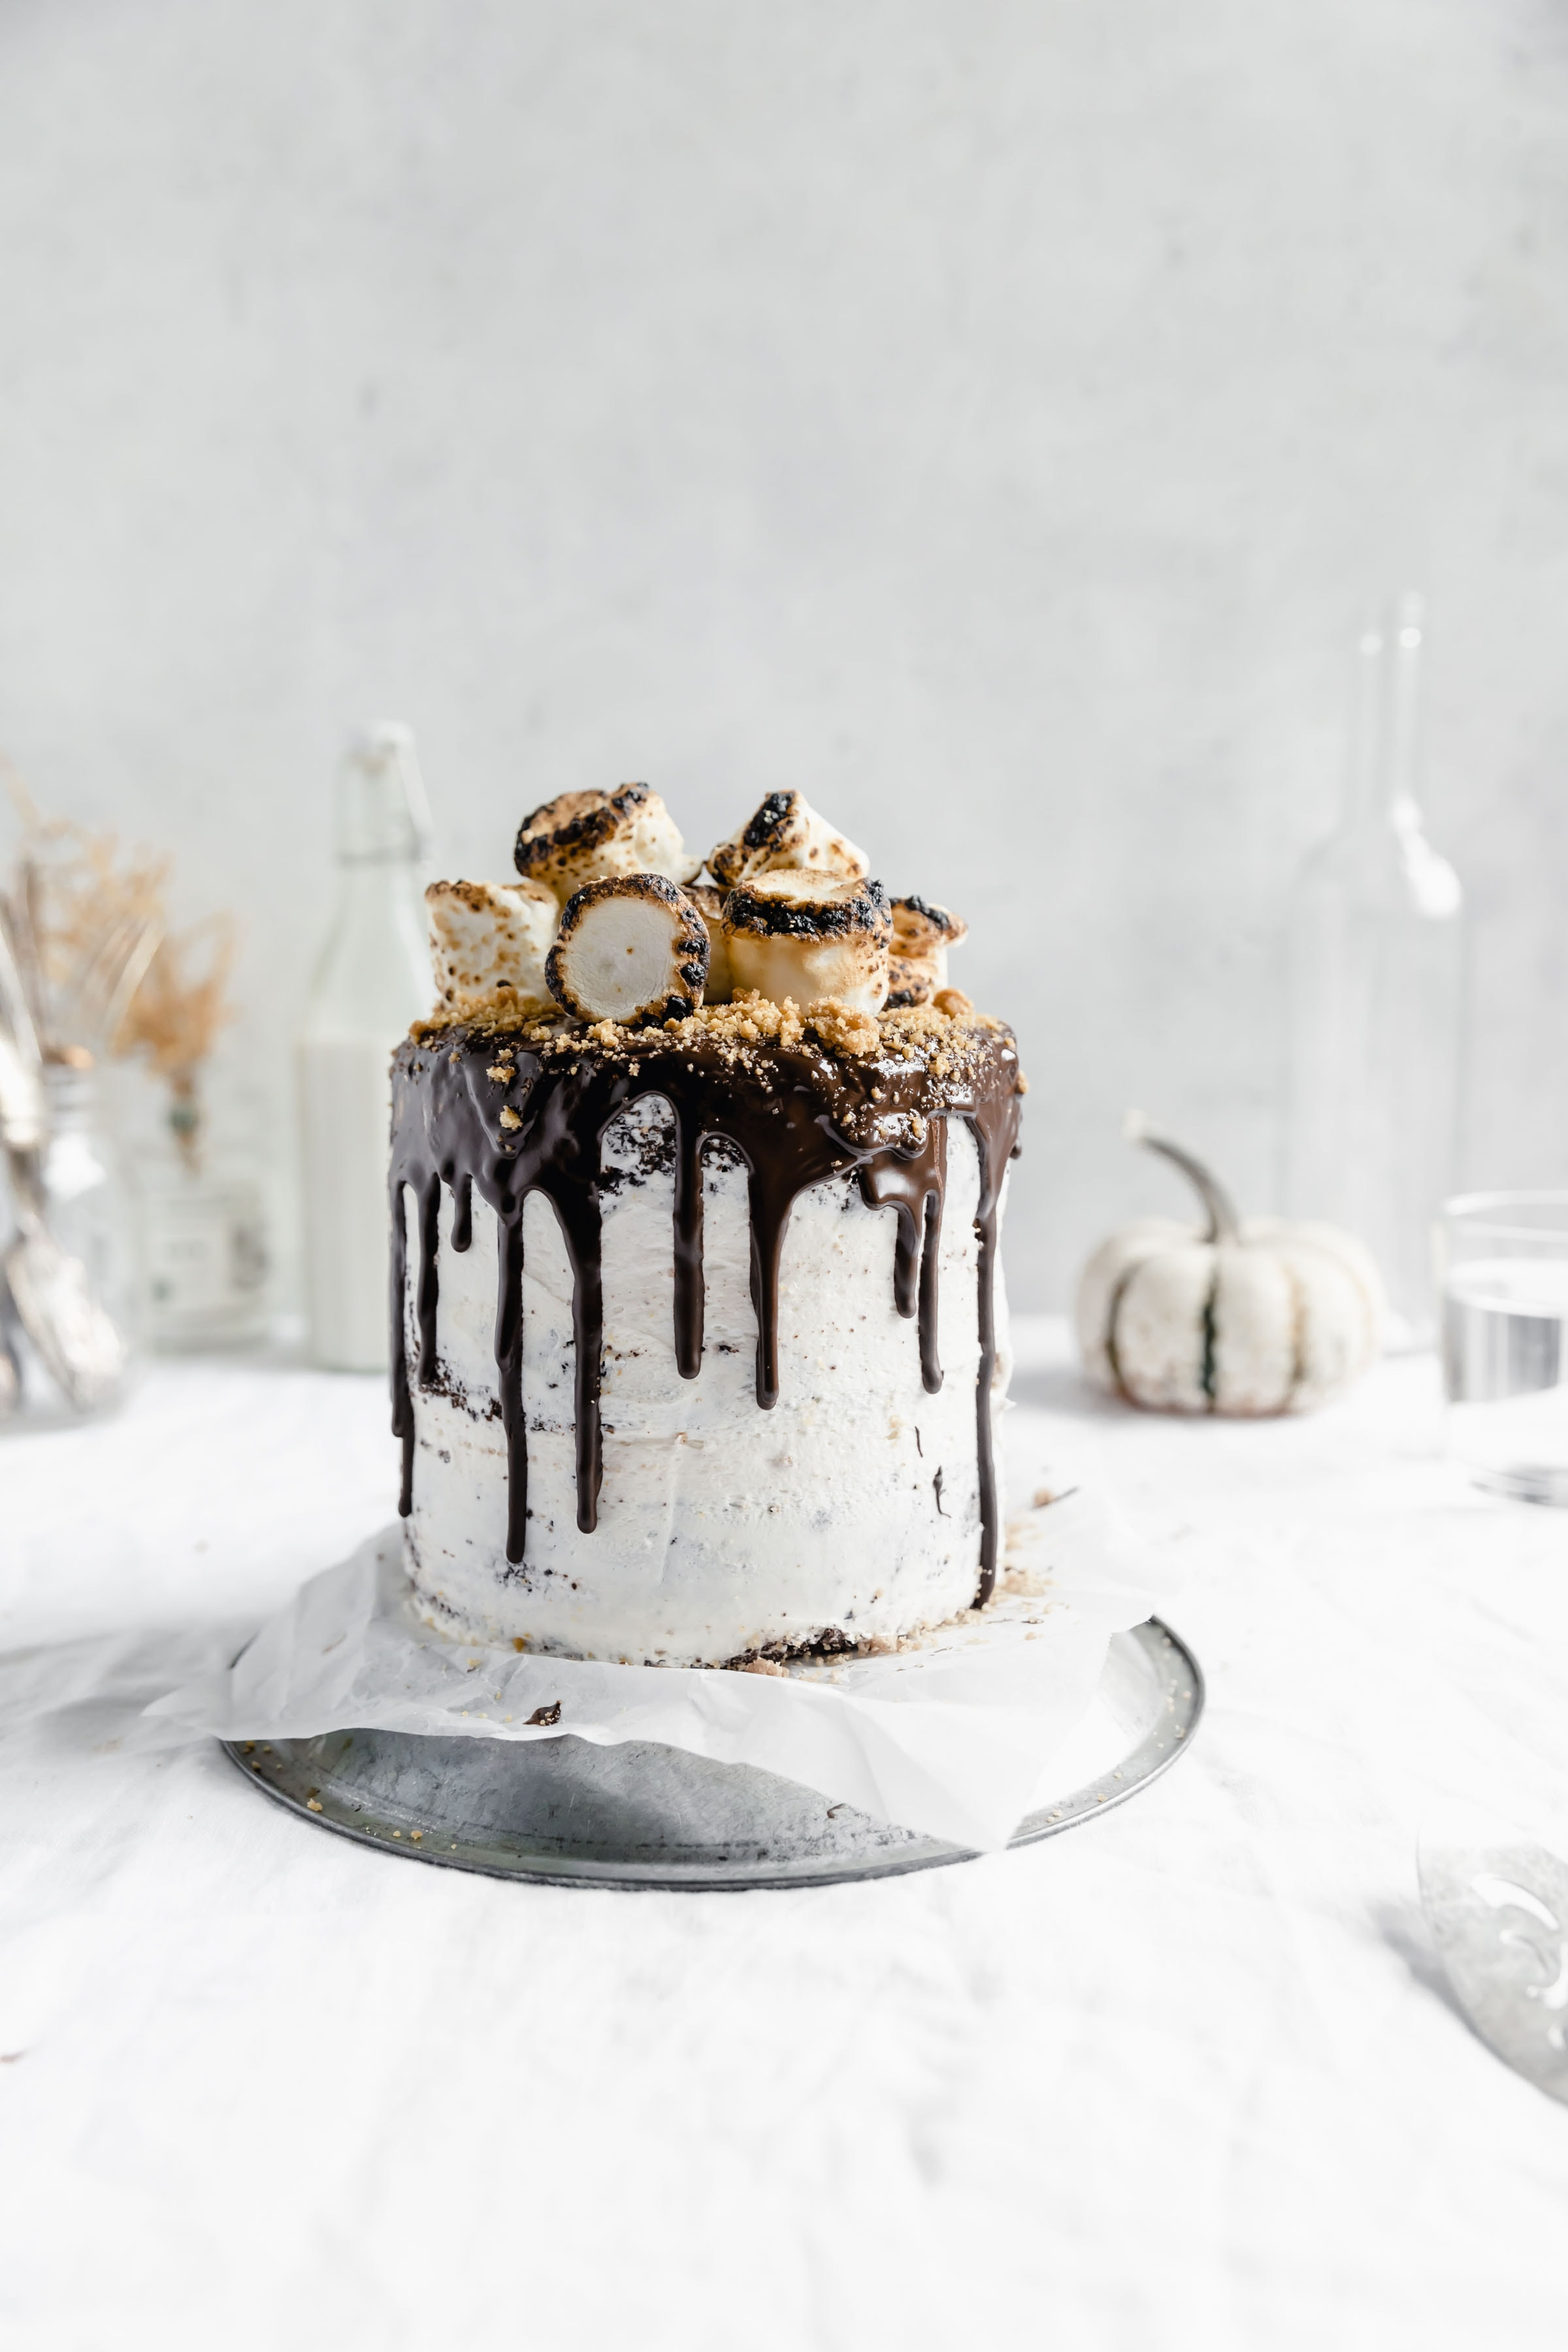 s'more layer cake AKA fudgy chocolate cake with a marshmallow and graham filling, marshmallow frosting, chocolate ganache, and topped with toasted marshmallows.YUM.